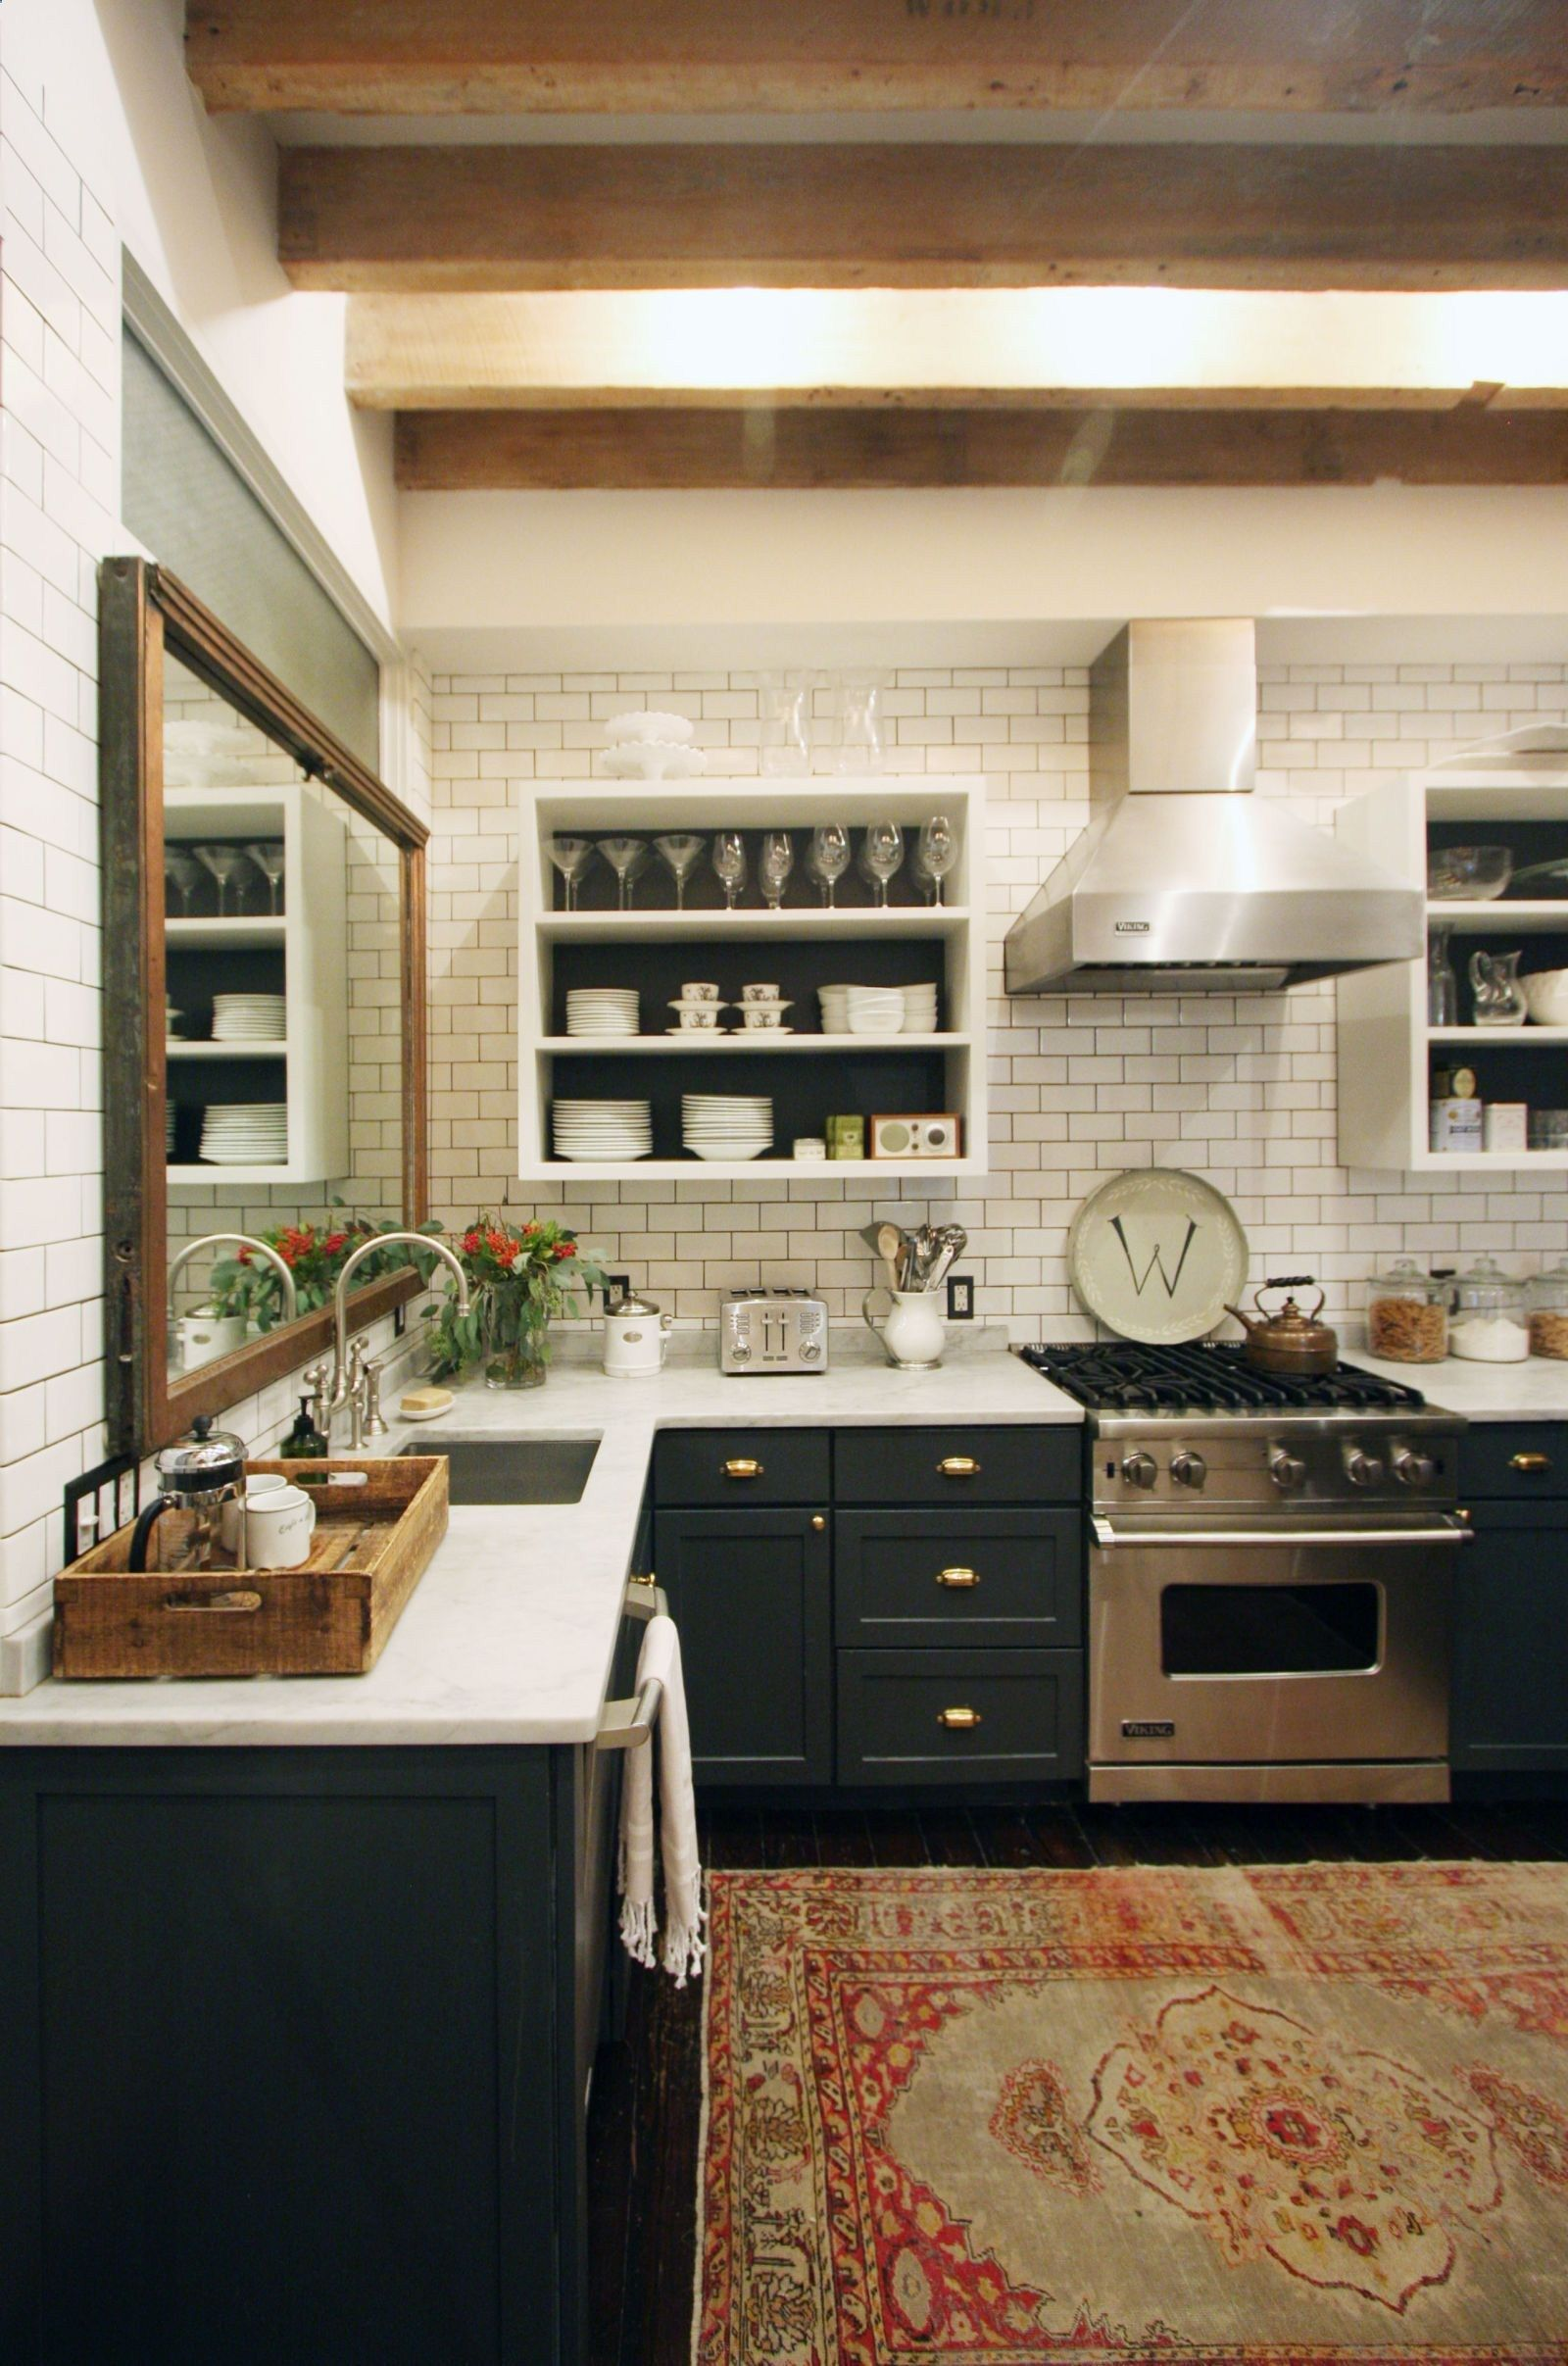 Kitchen Appliances Kitchen Innovation Kitchen Ikea Kitchen Layout Kitchen Sunrooms Kitchen Composter Kit Home Trends Kitchen Remodel Kitchen Inspirations